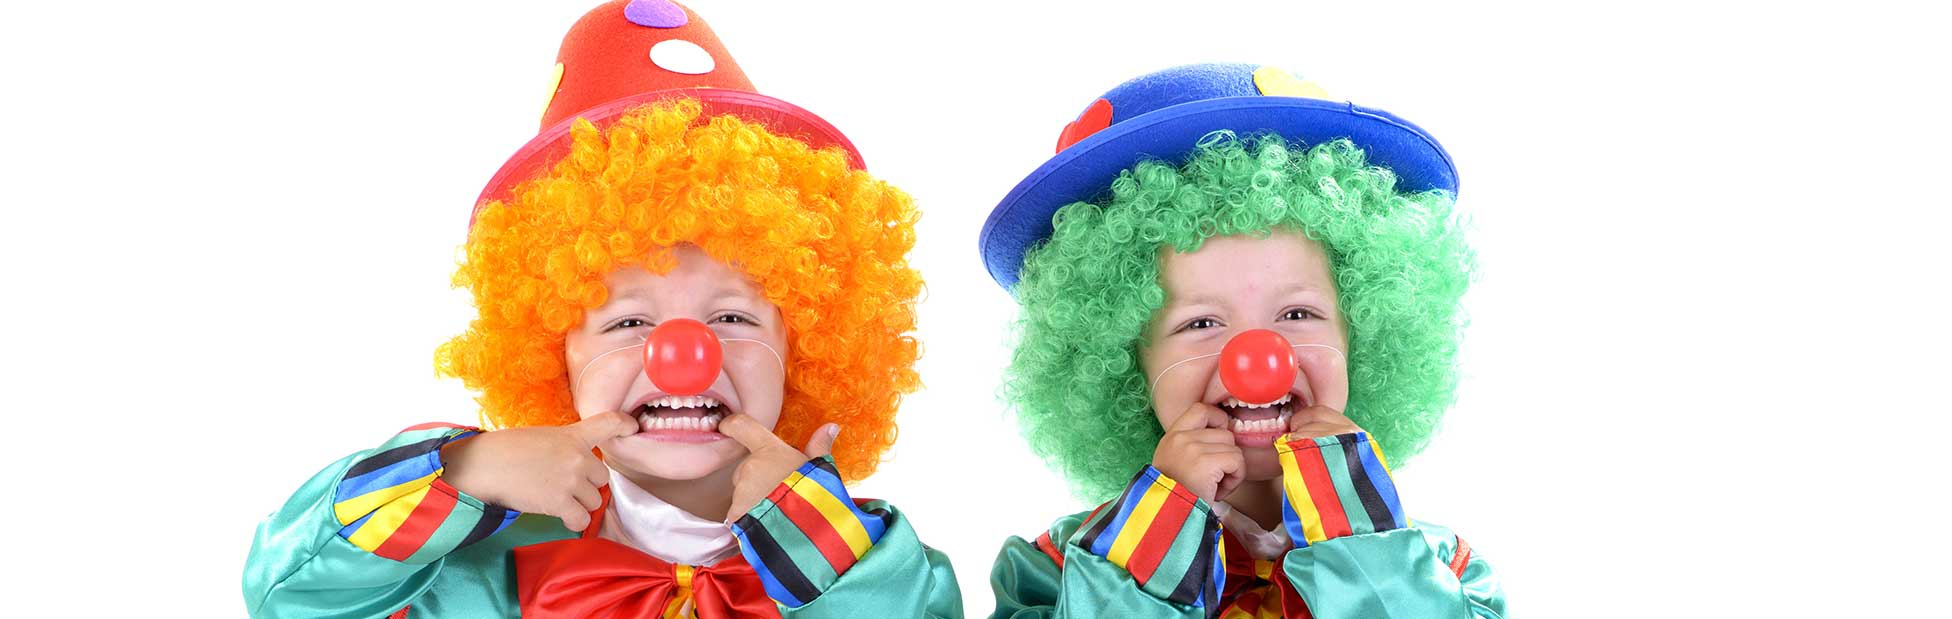 Two boys dressed as clowns pulling silly faces